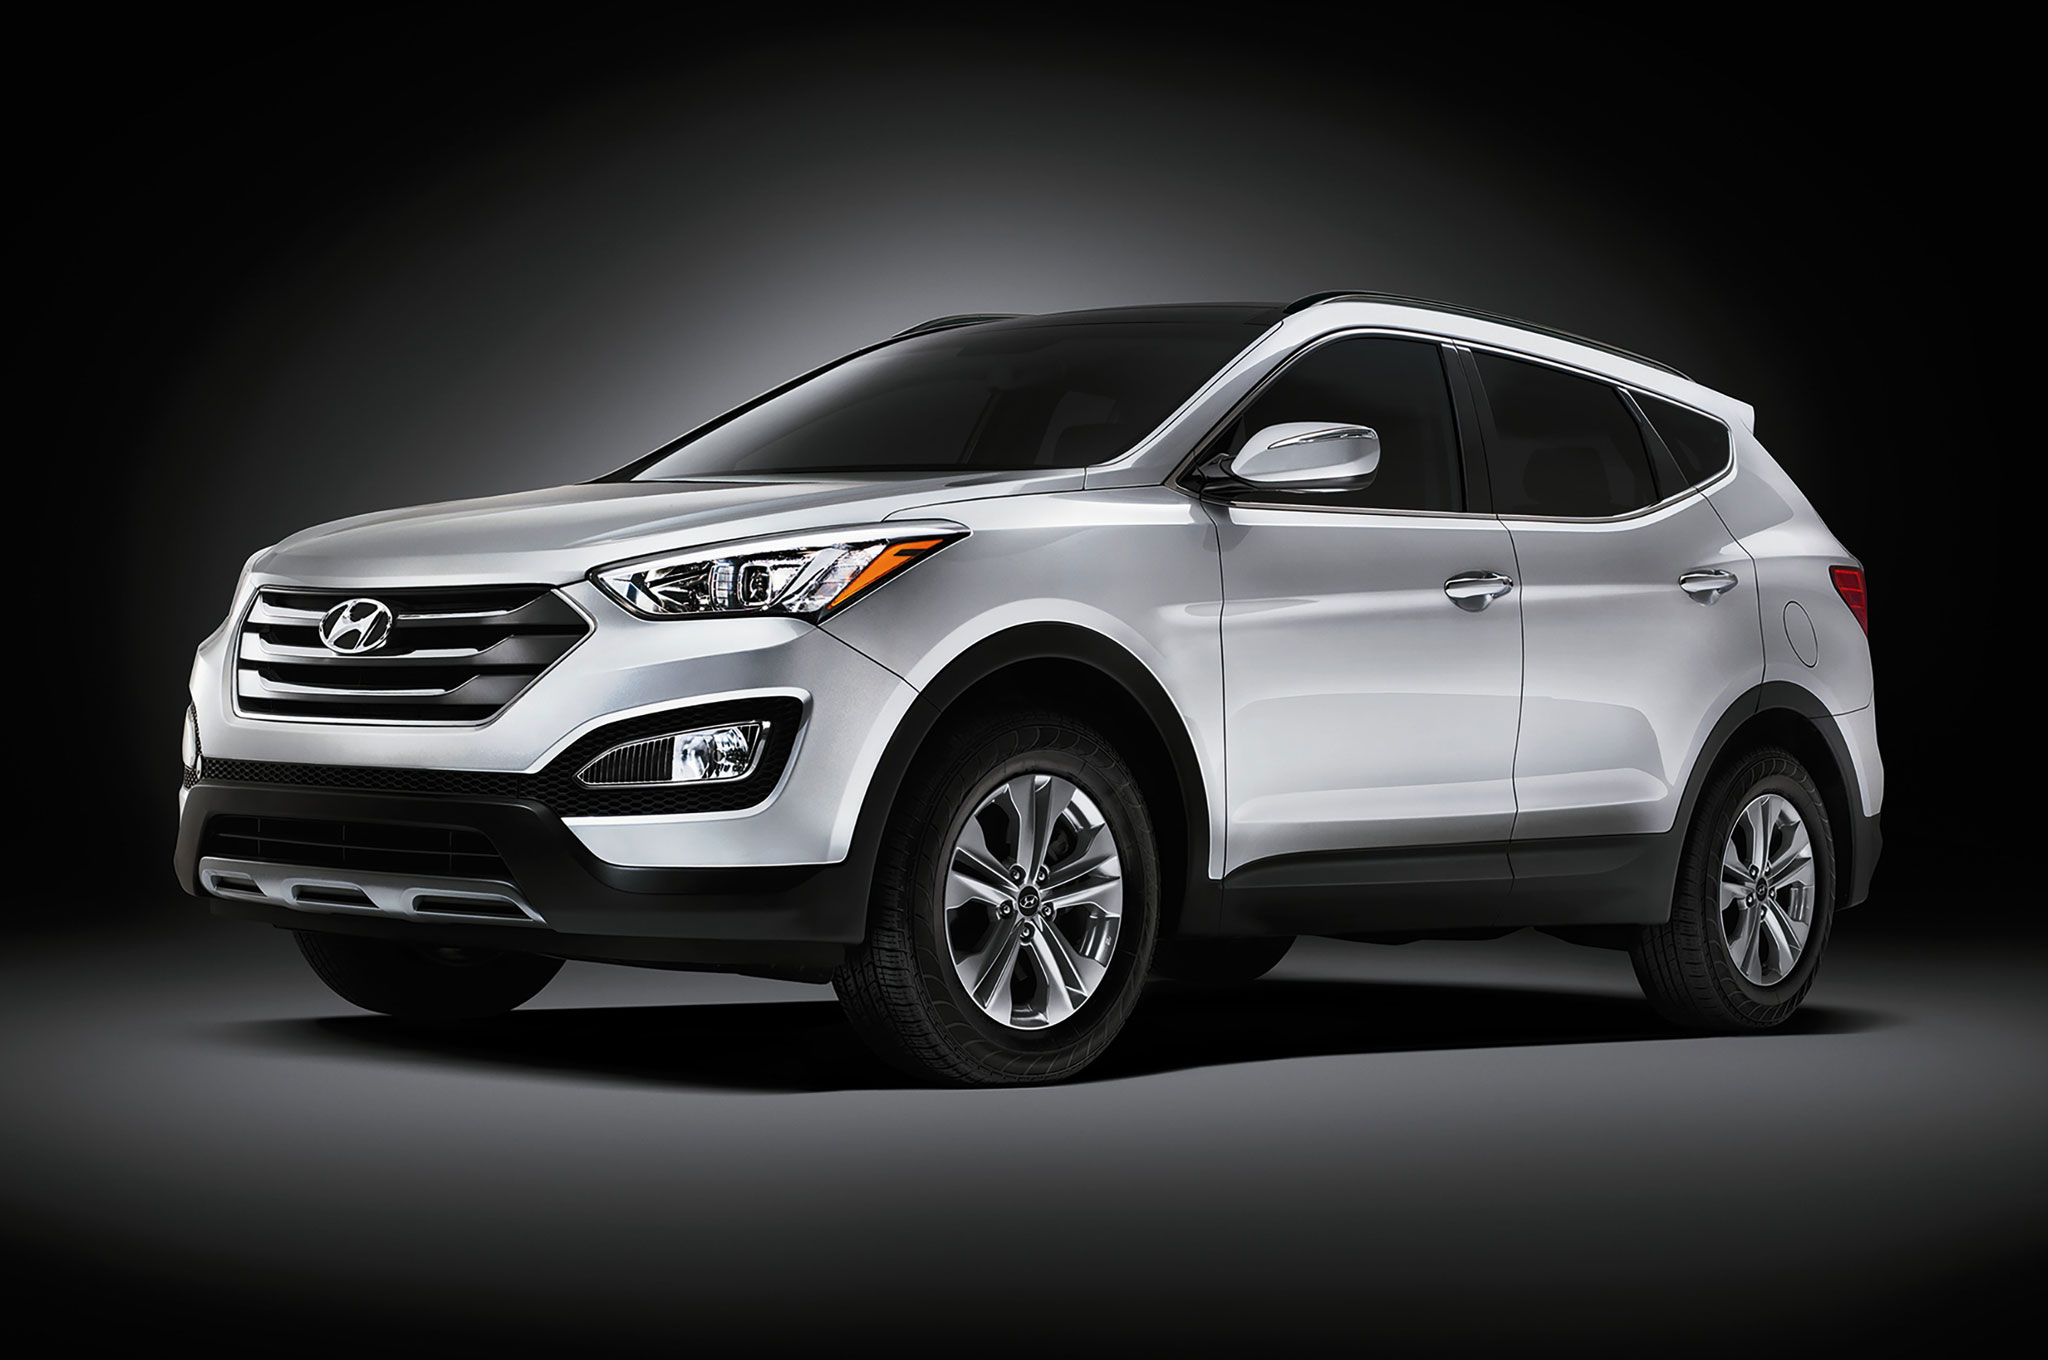 Hyundai Santa Fe Sport Front Three Quarter View In Studio